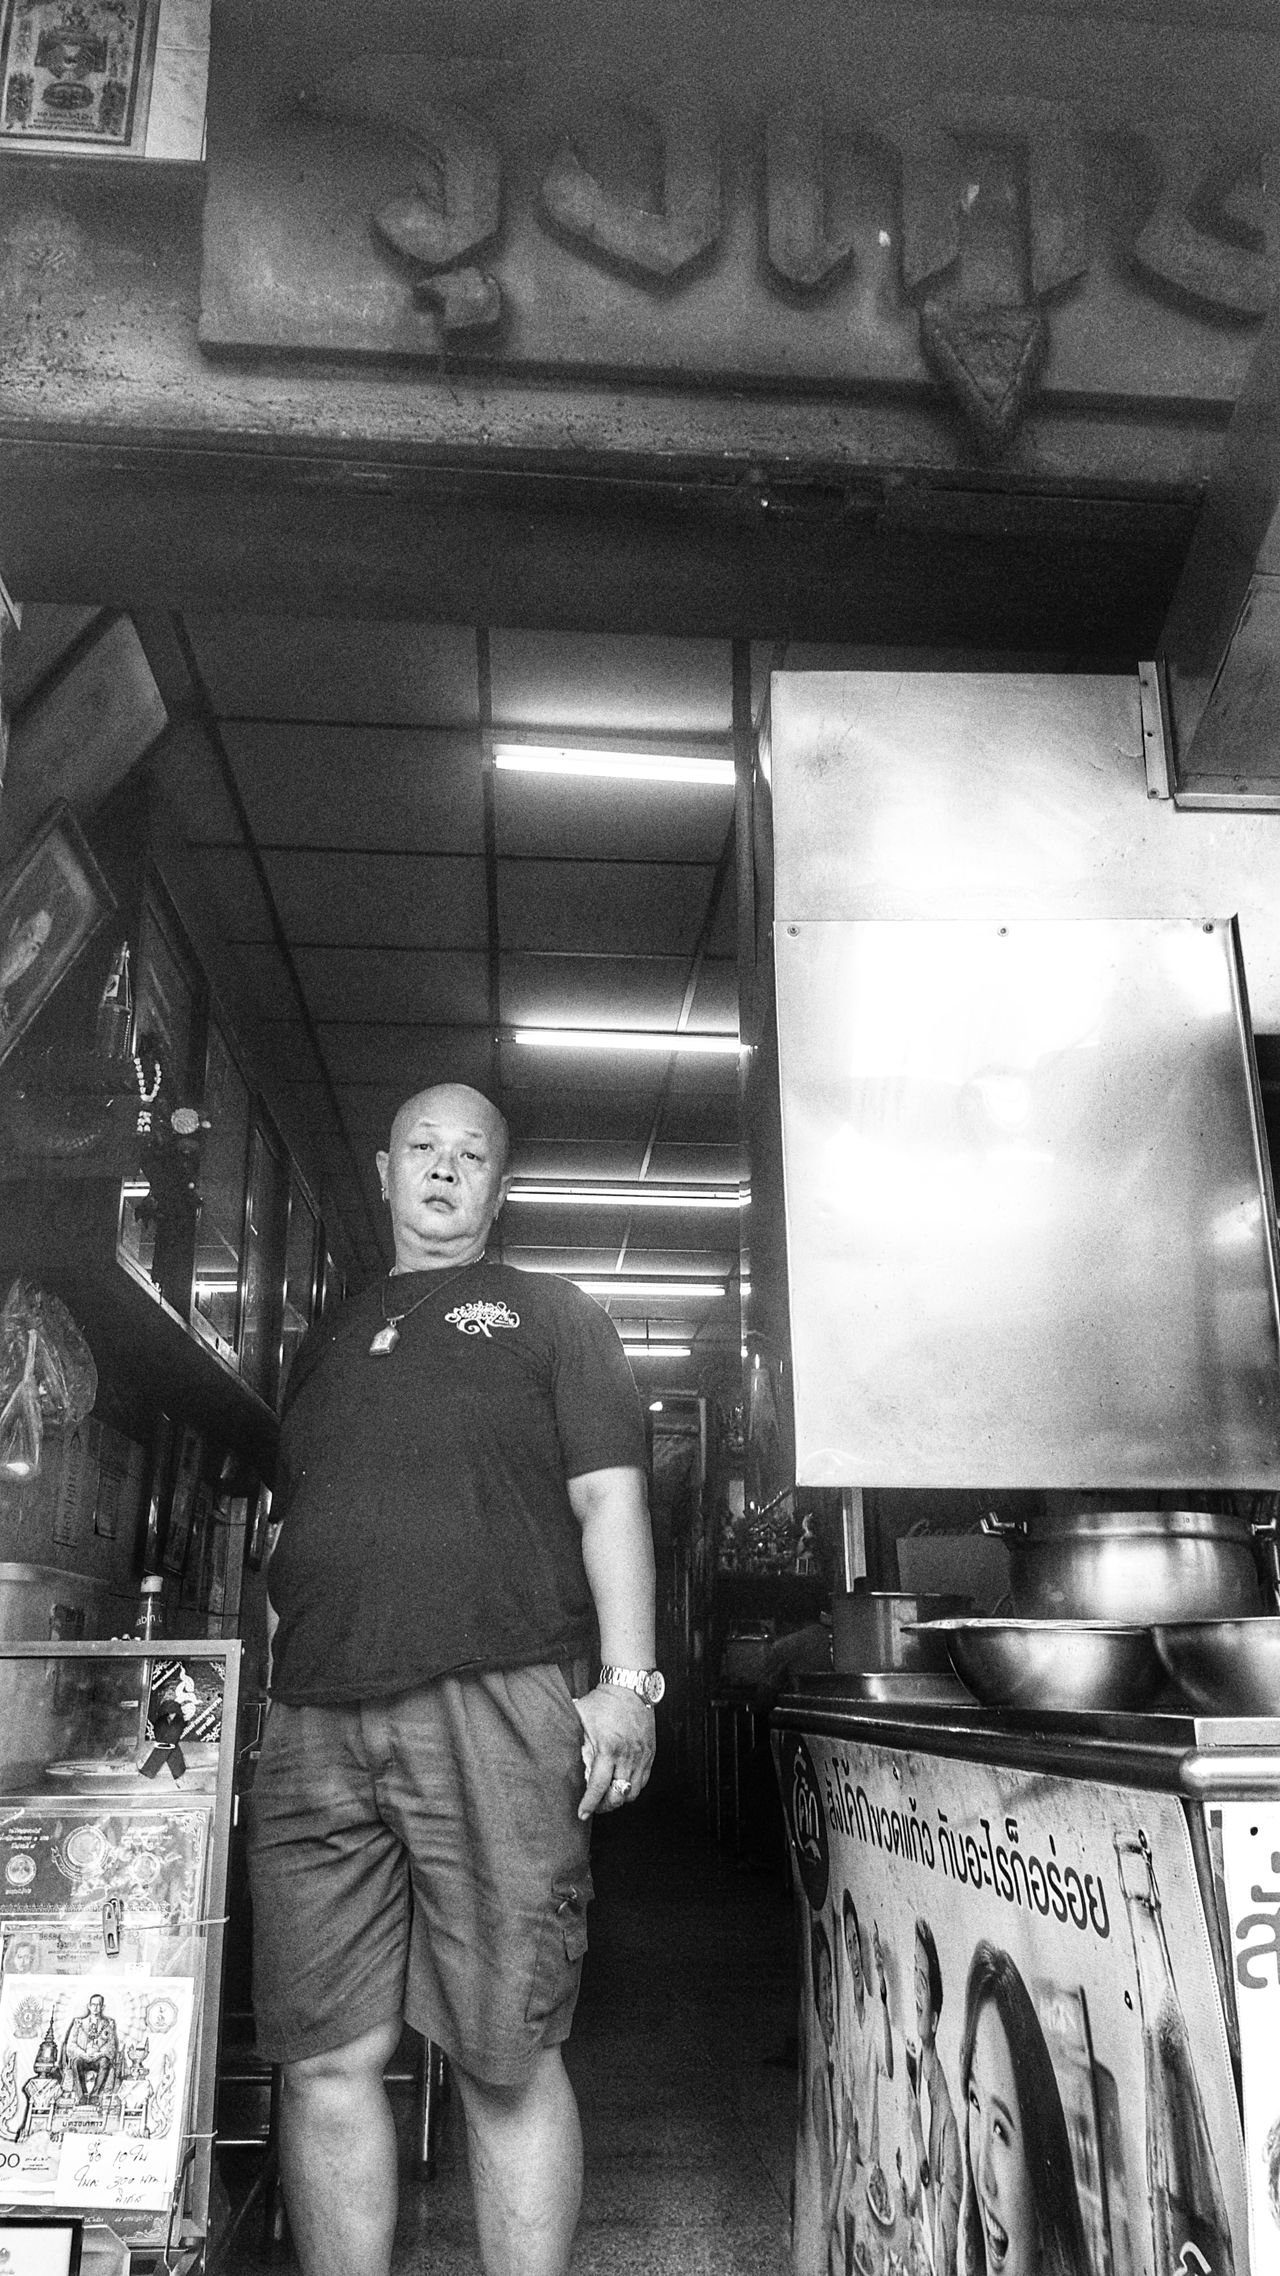 Indoors  Full Length Standing One Person Real People People Day One Man Only Street Life Streetphotography Street Photography Bangkok Thailand. Thaprachan Human Of Bangkok Bangkok Thaprajan Monochrome Photography Black And White Photography Black & White Working Responsibility Chef Commercial Kitchen Only Men Kitchen